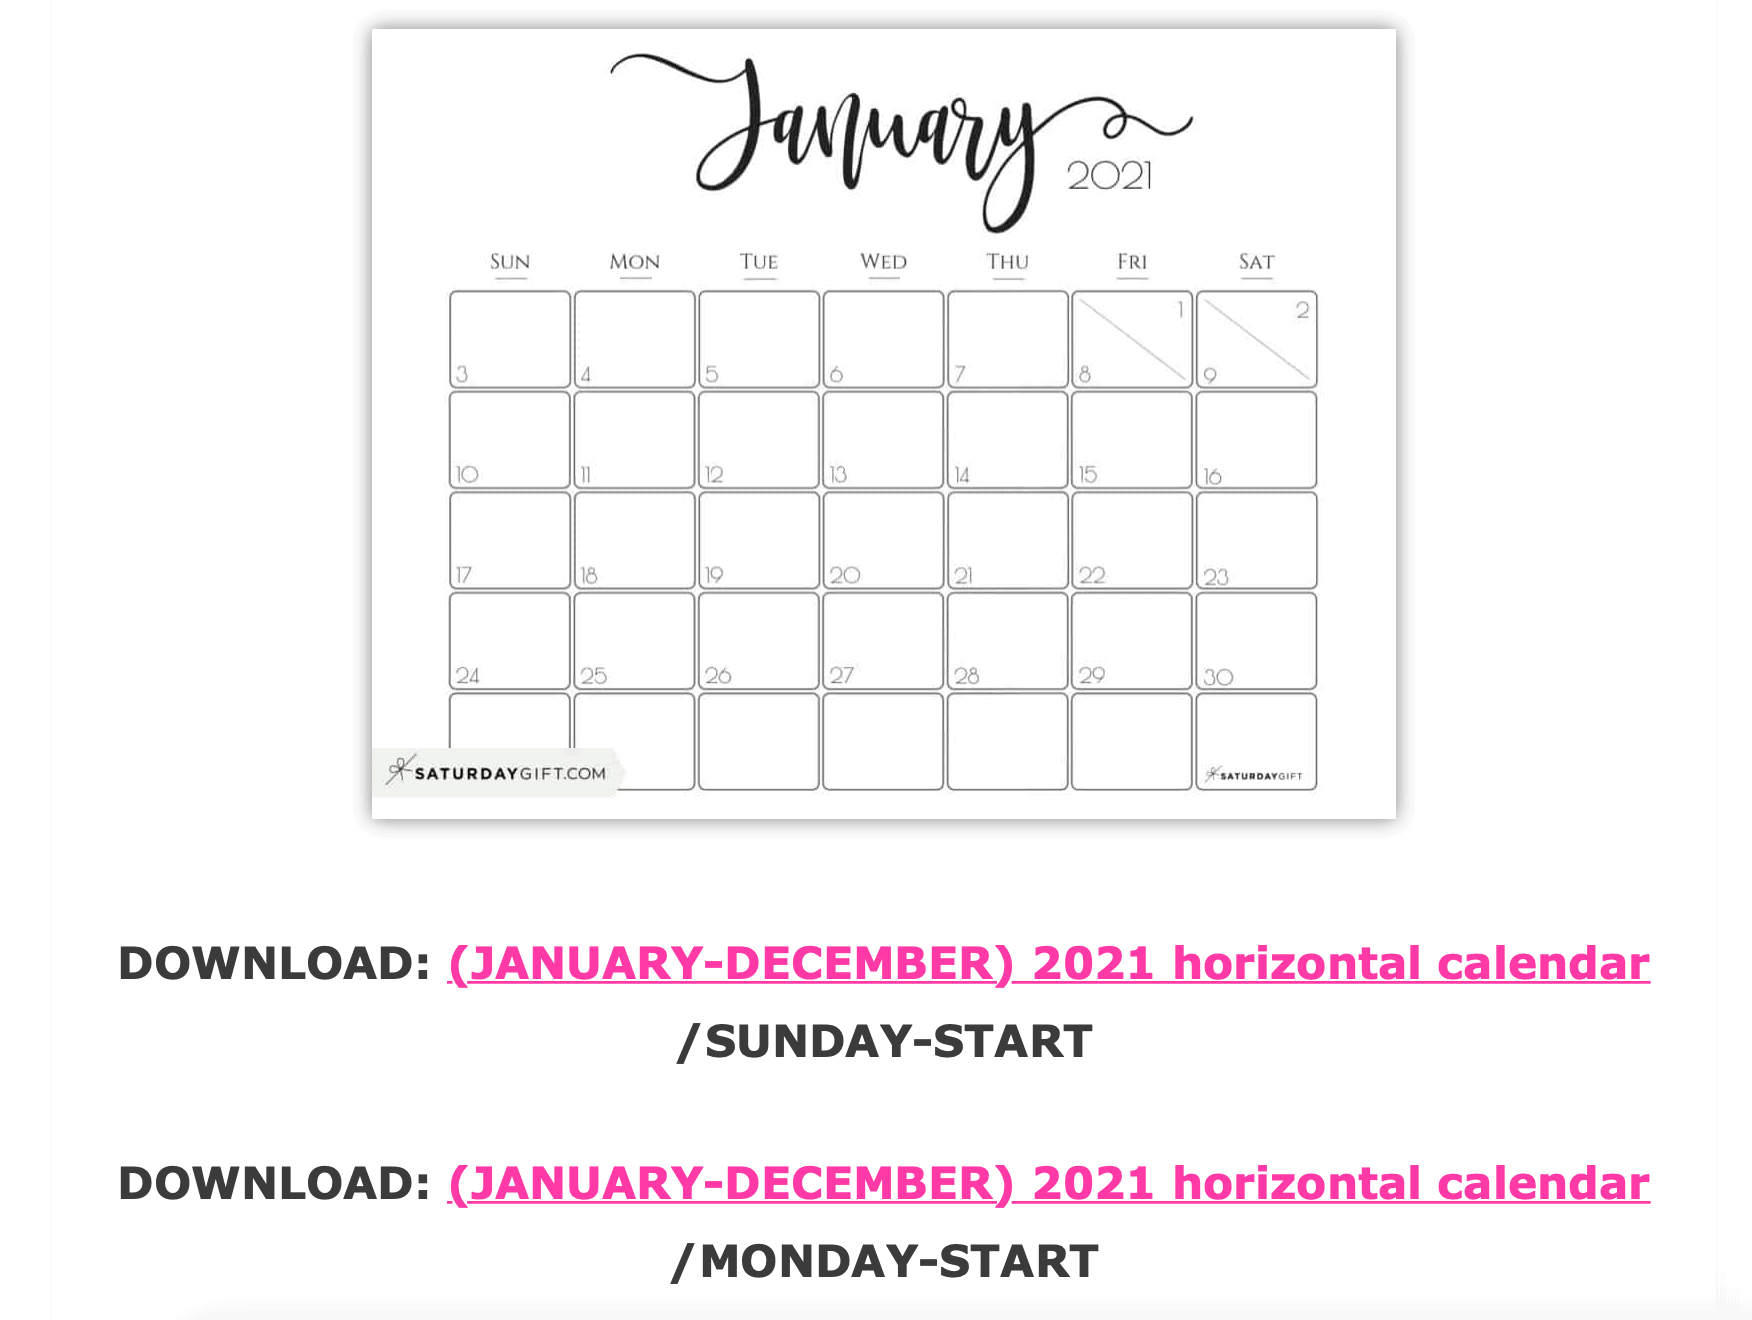 """Go to Library/></noscript> Scroll down until you see this image > Click the download link under the image to download the calendars for the whole year"""" /></p> <p>But I'll also add here the instant download links to February 2021 and March 2021 calendars elegant horizontal. </p> <p><a href="""